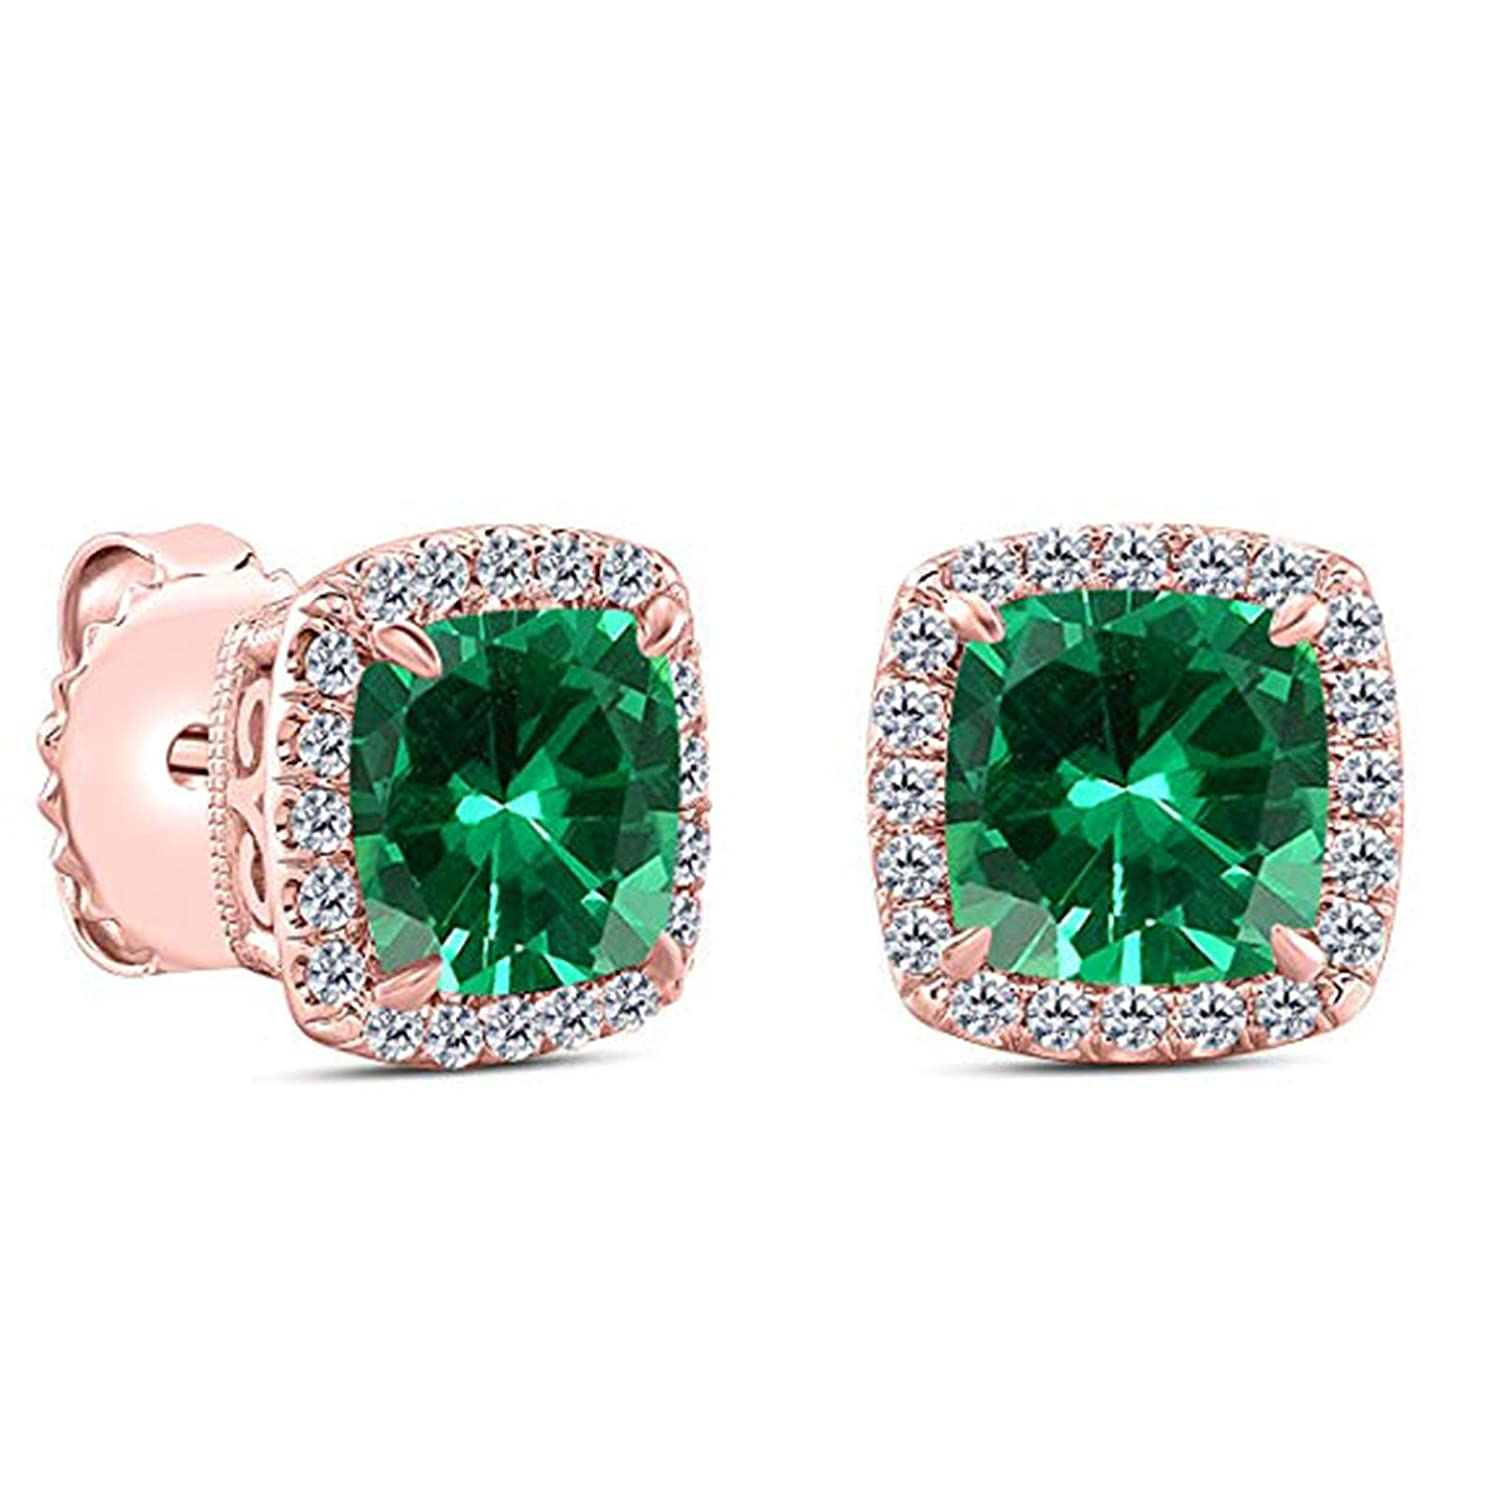 Suhana Jewellery Stud Earrings Collections 14K Gold Fn CZ for Girls Womens Daily Party Wear Jewellery